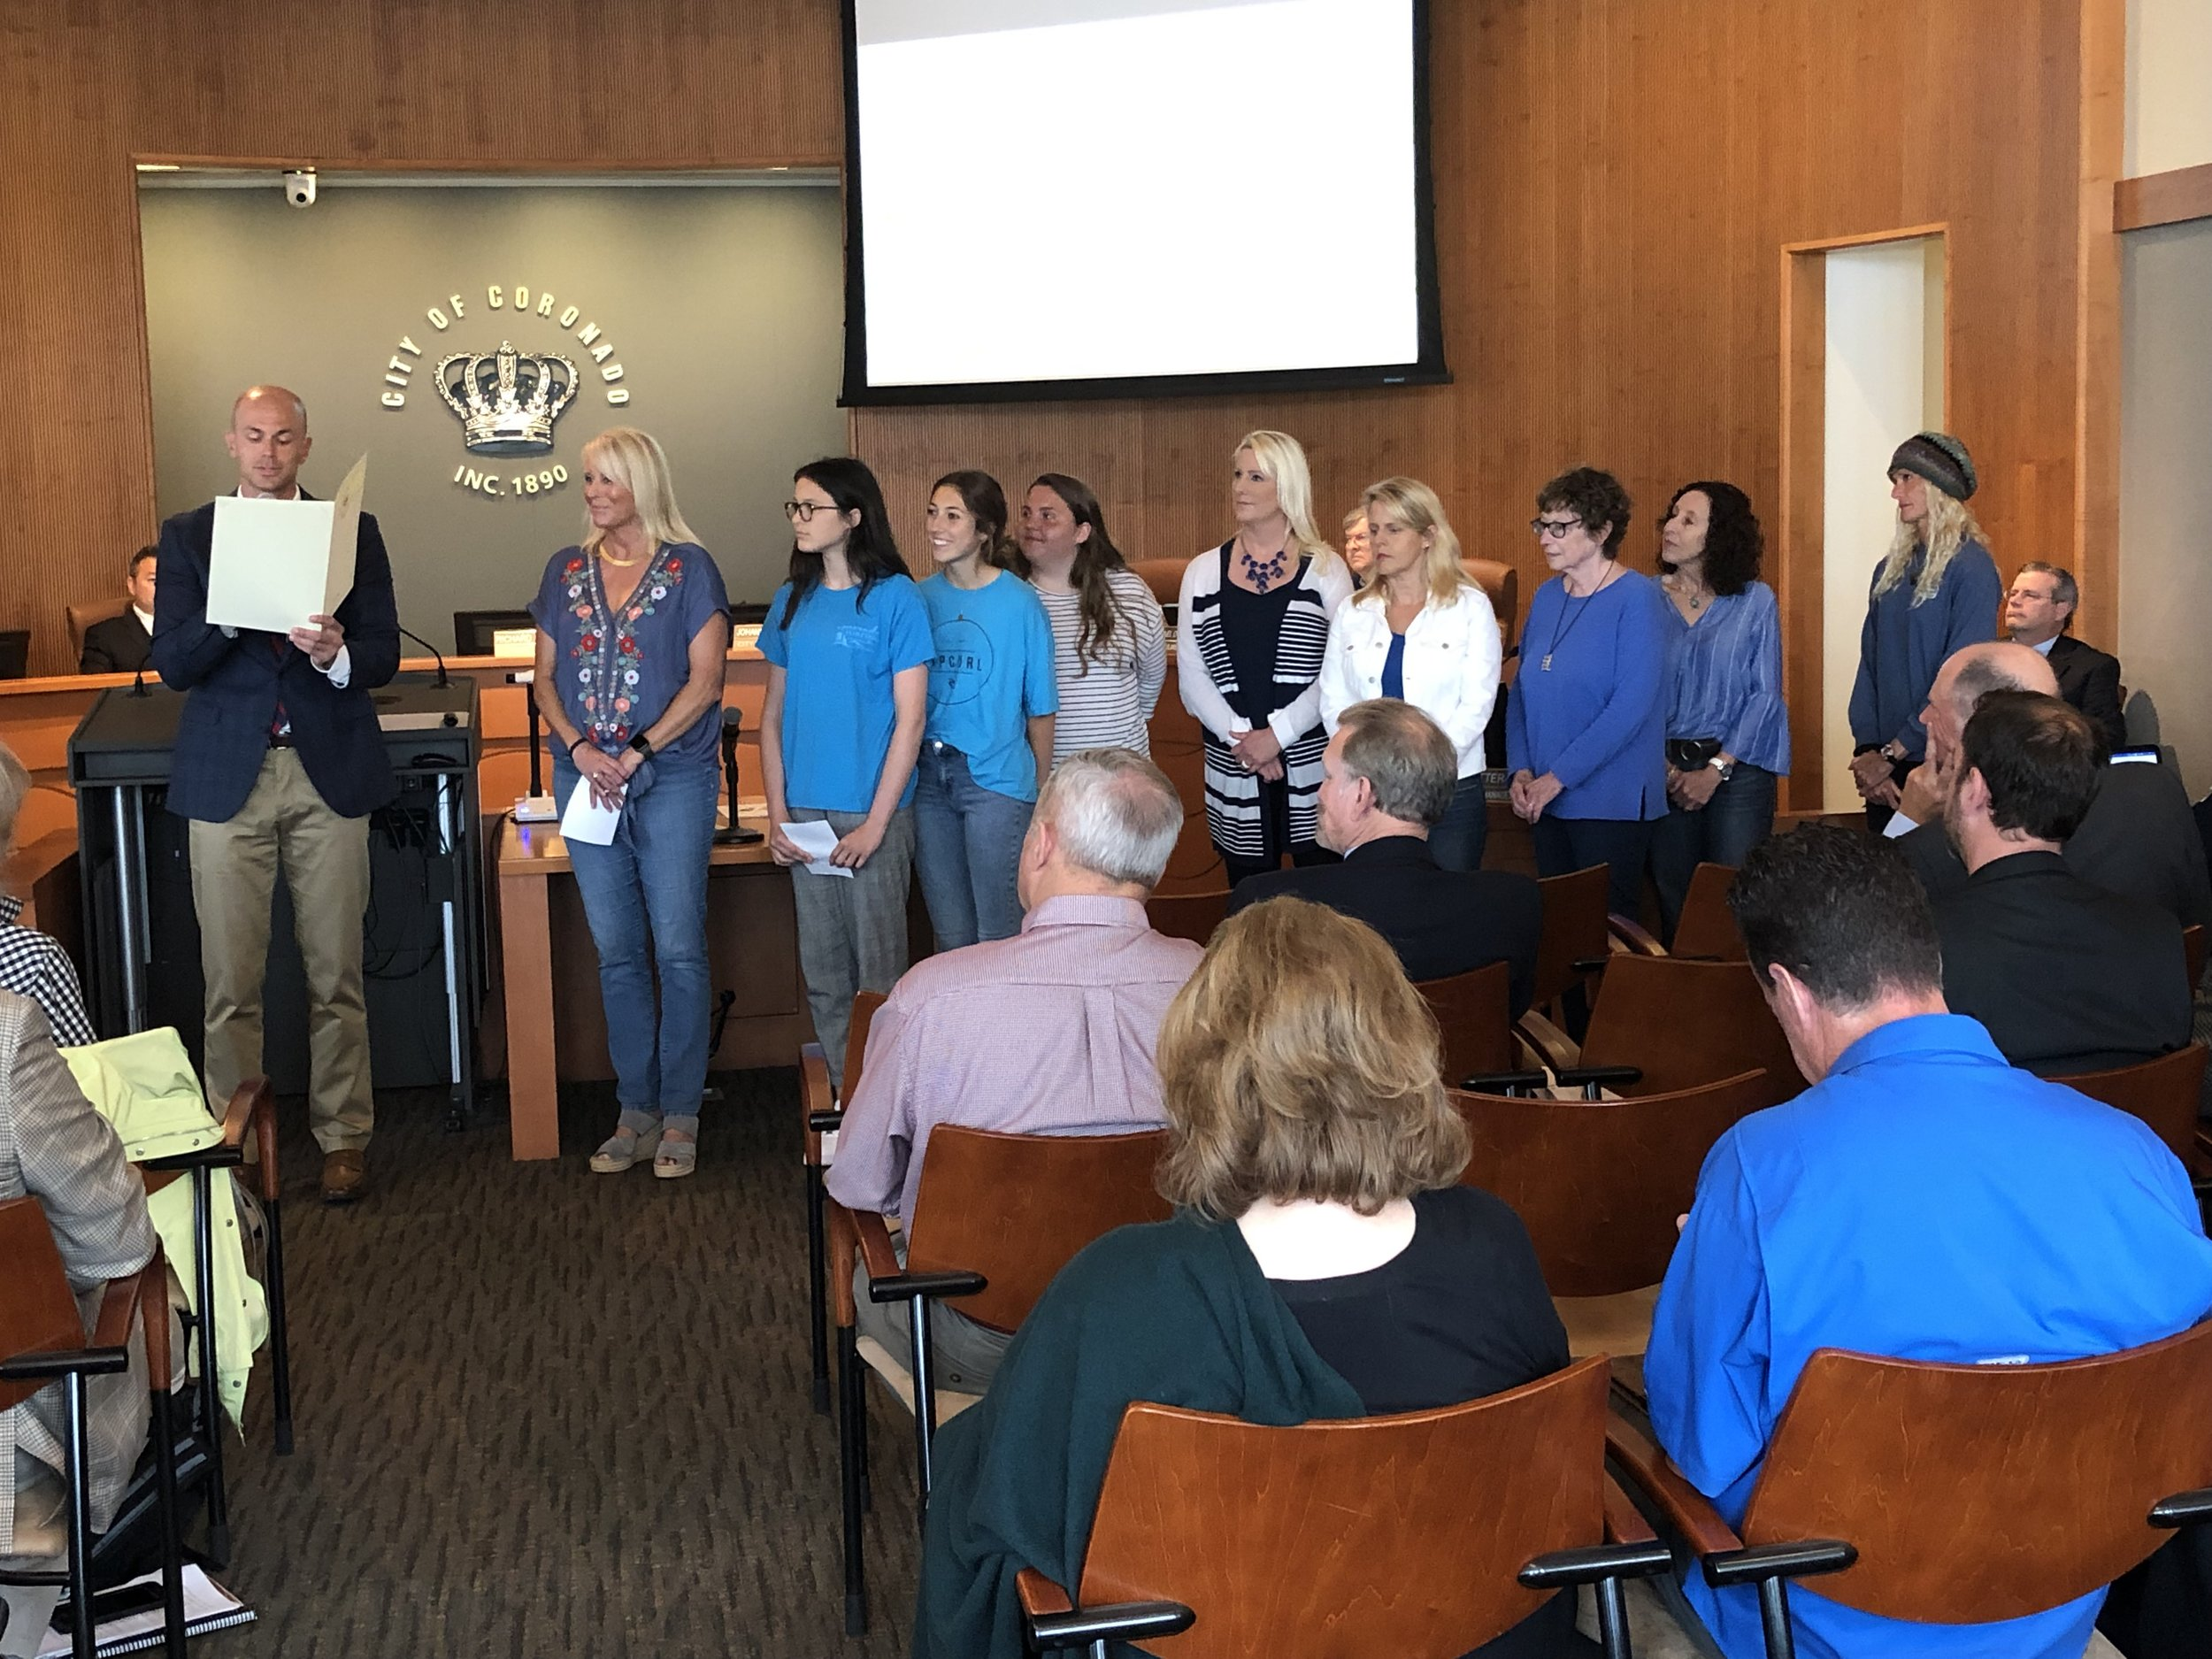 Mayor Richard Bailey reads his Proclamation as Emerald Keepers look on. To see the Proclamation, click below.